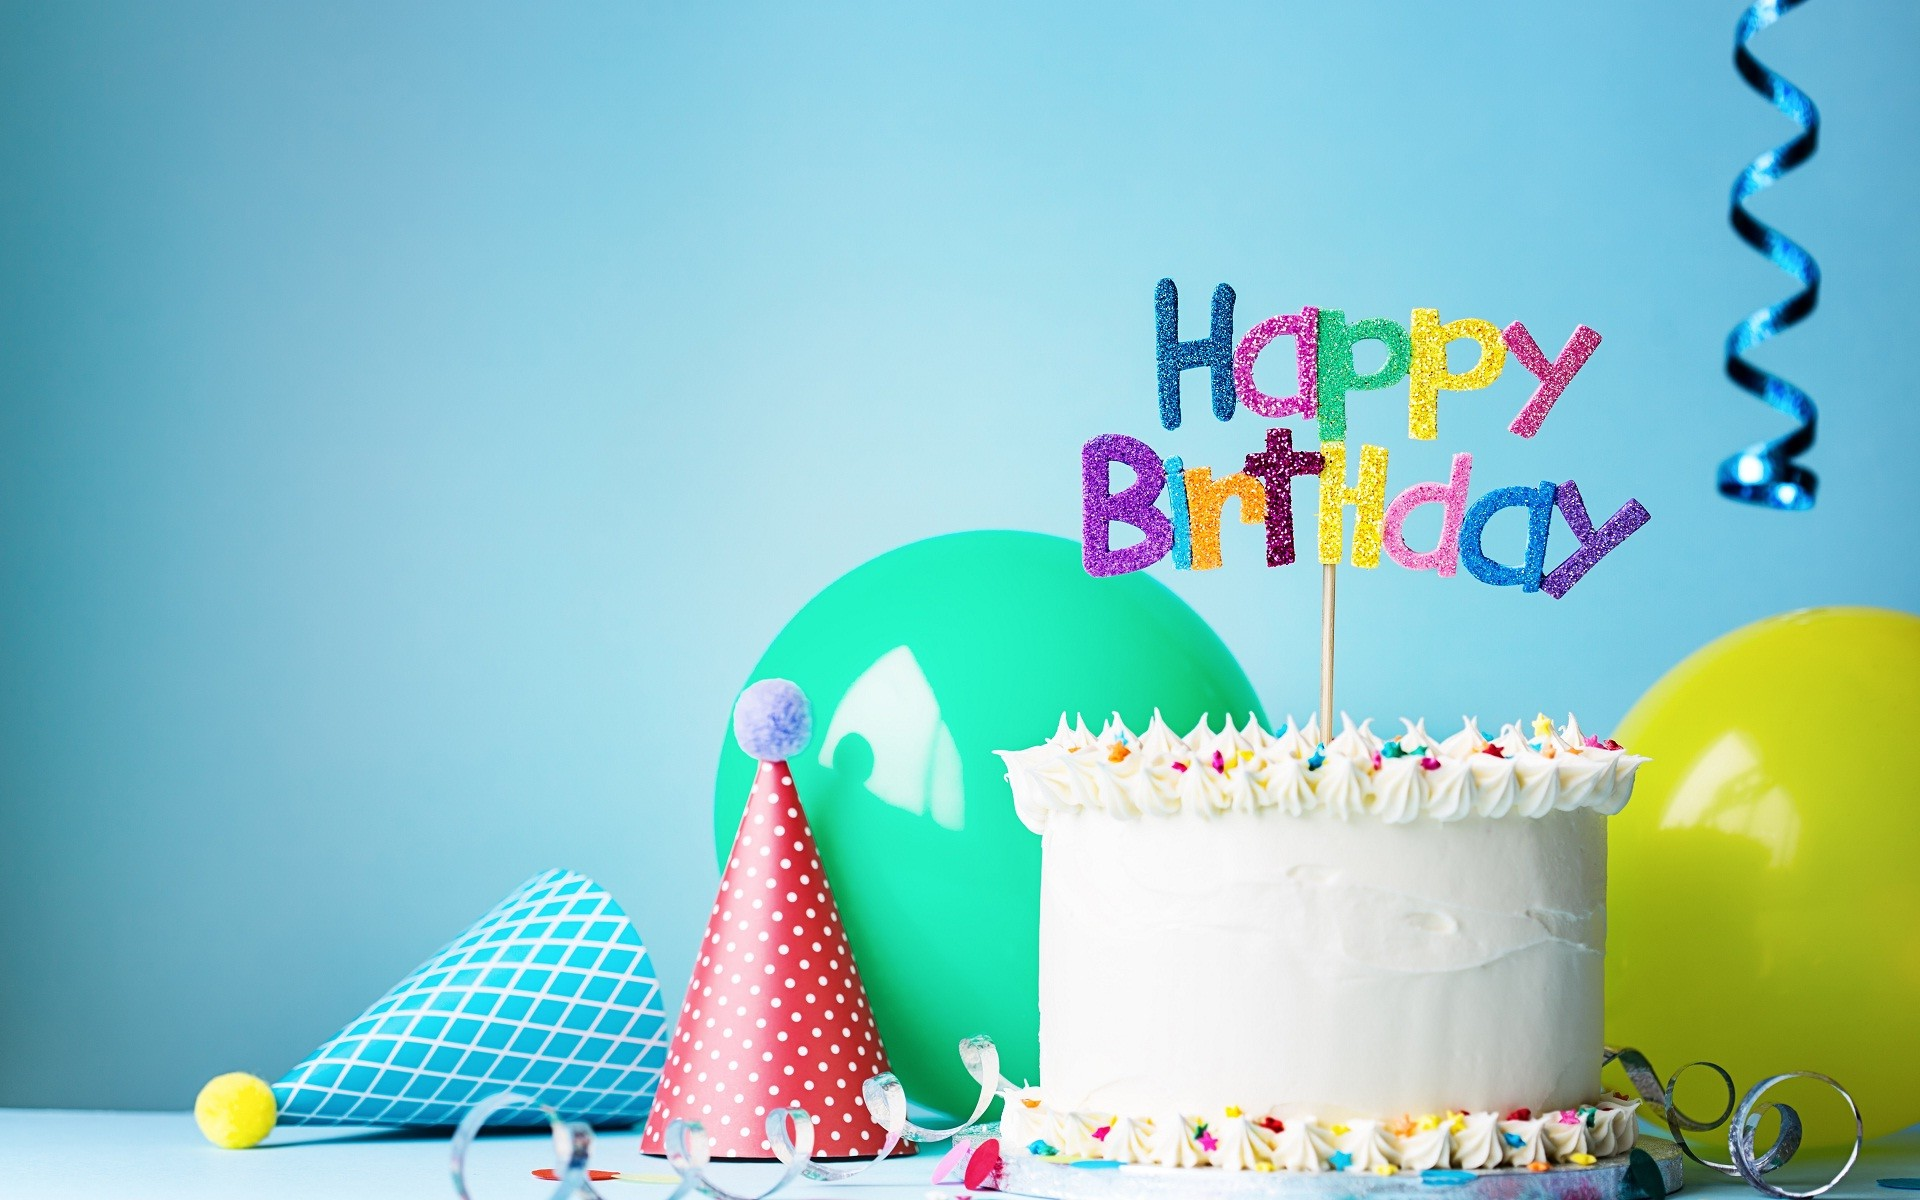 Res: 1920x1200, Birthday celebration cake and gift toys wallpapers